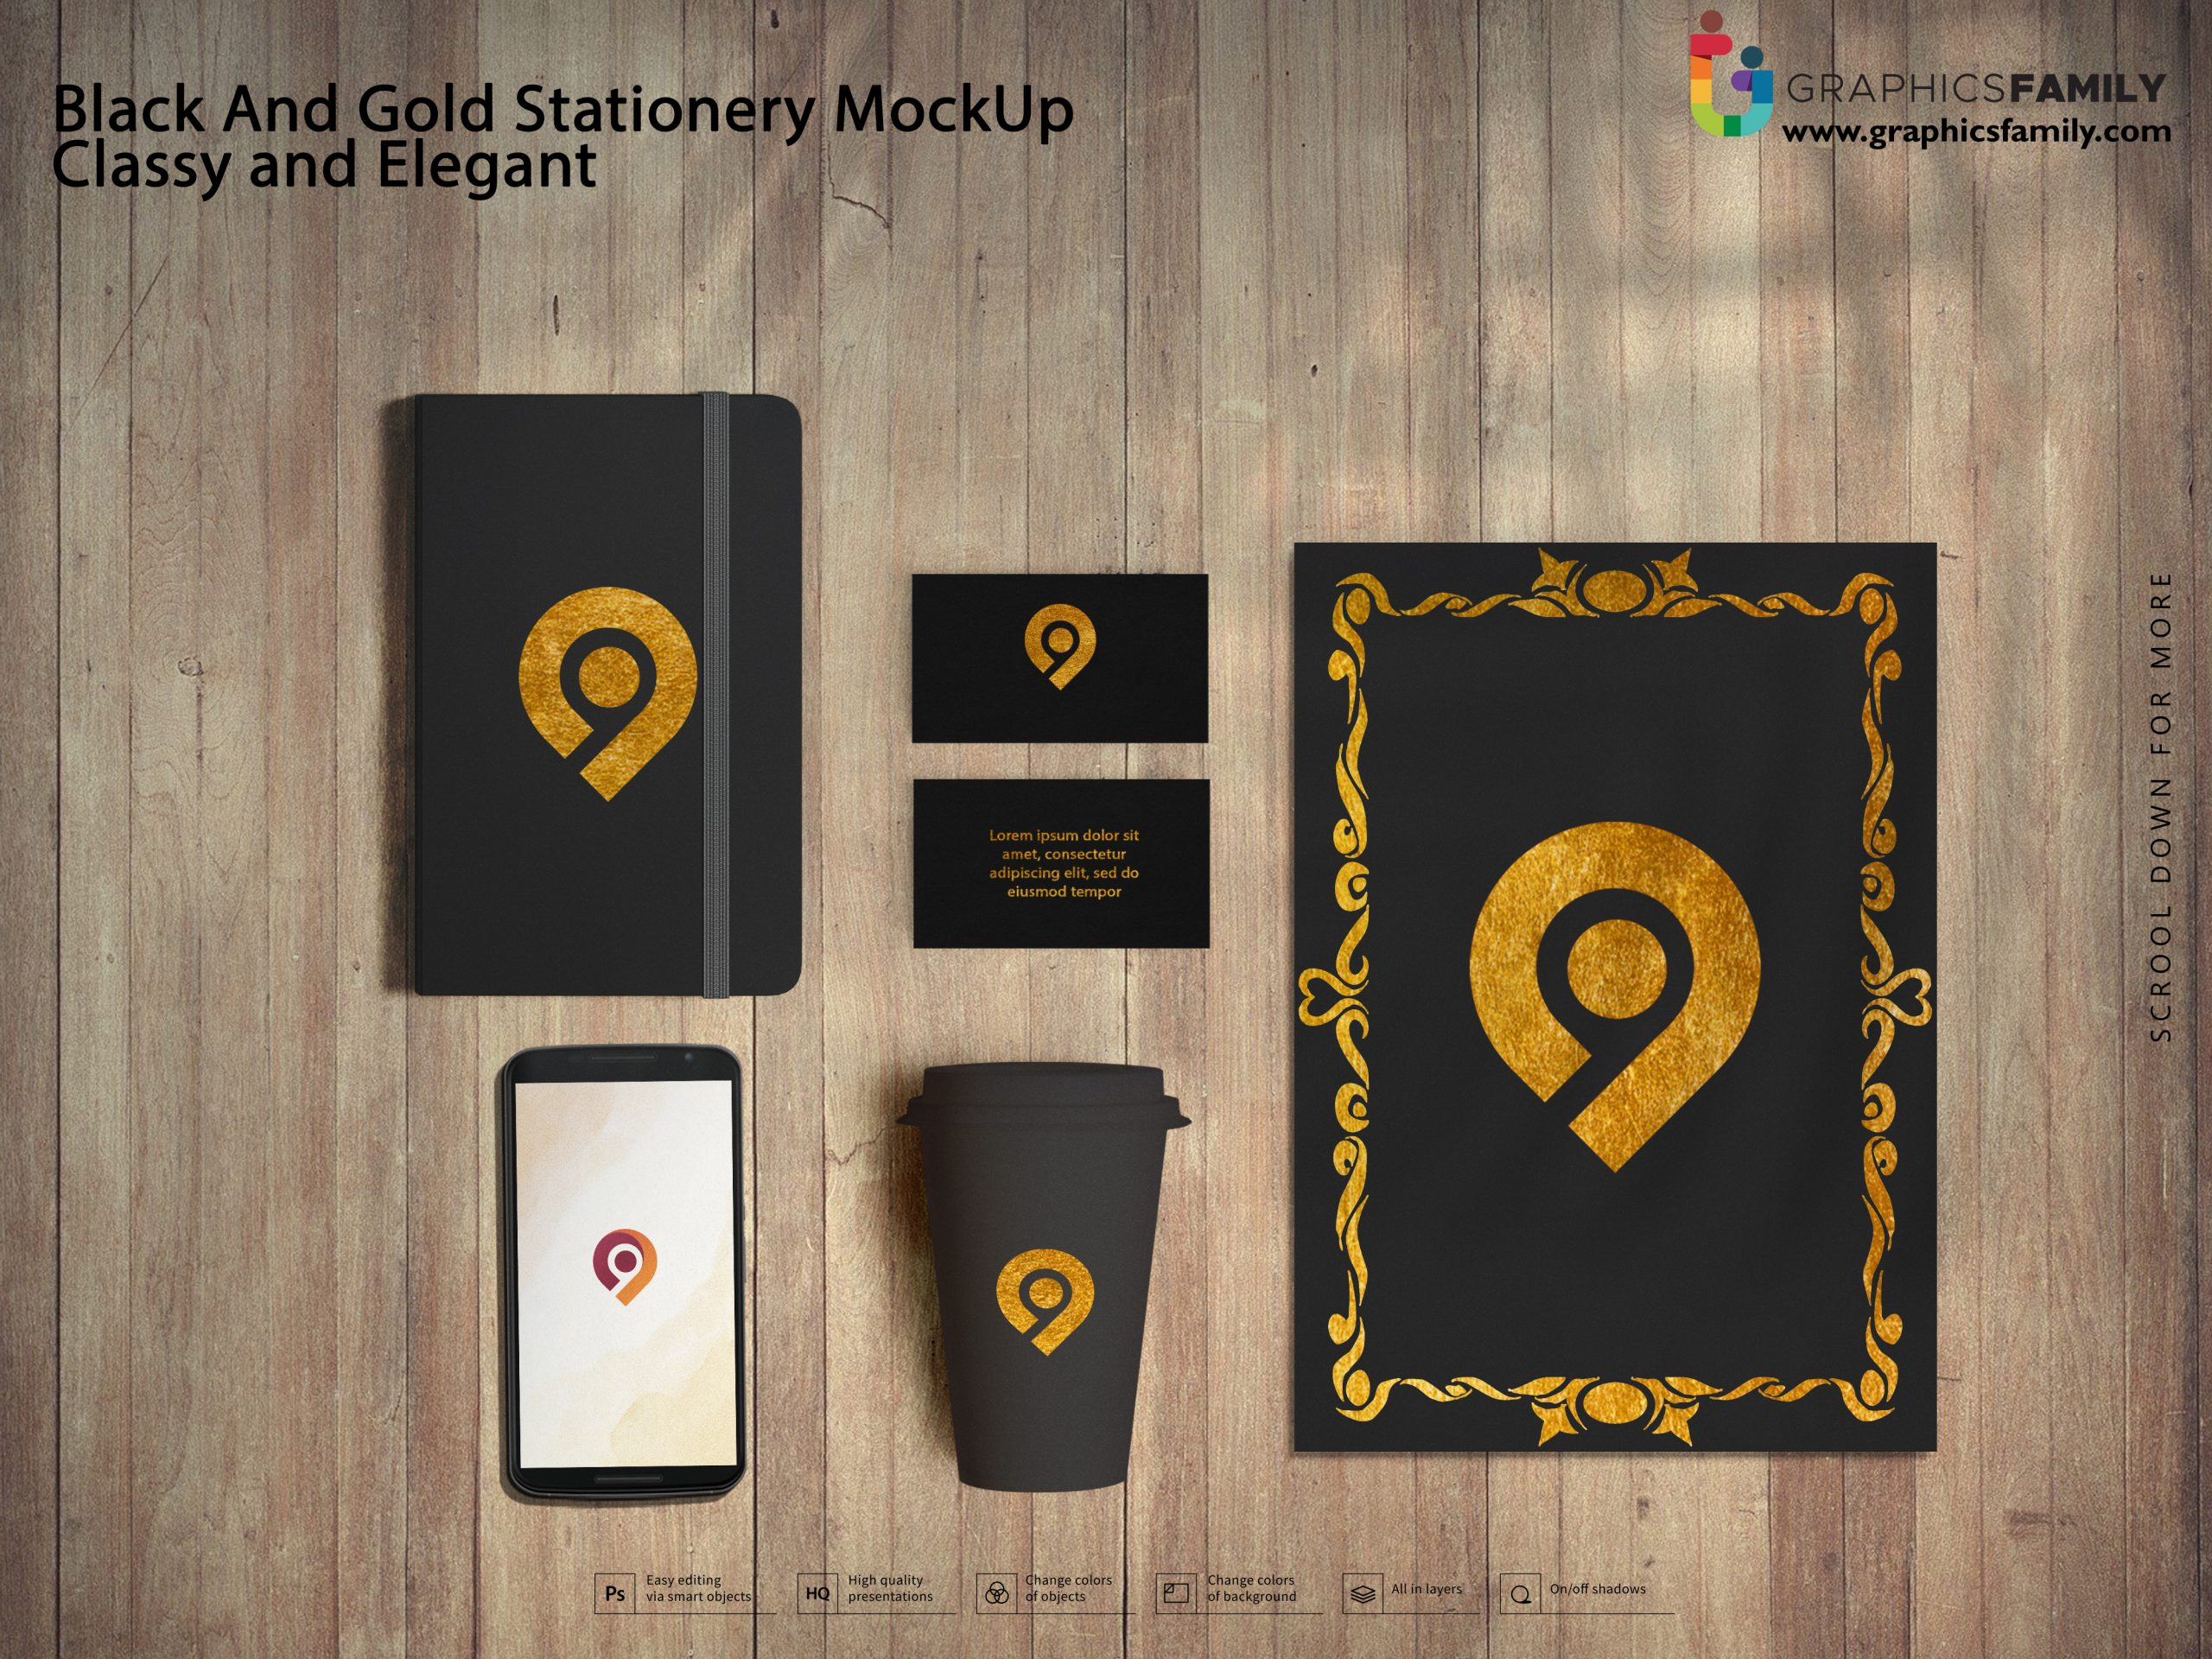 Free PSD Black And Gold Stationery MockUp Classy and Elegant